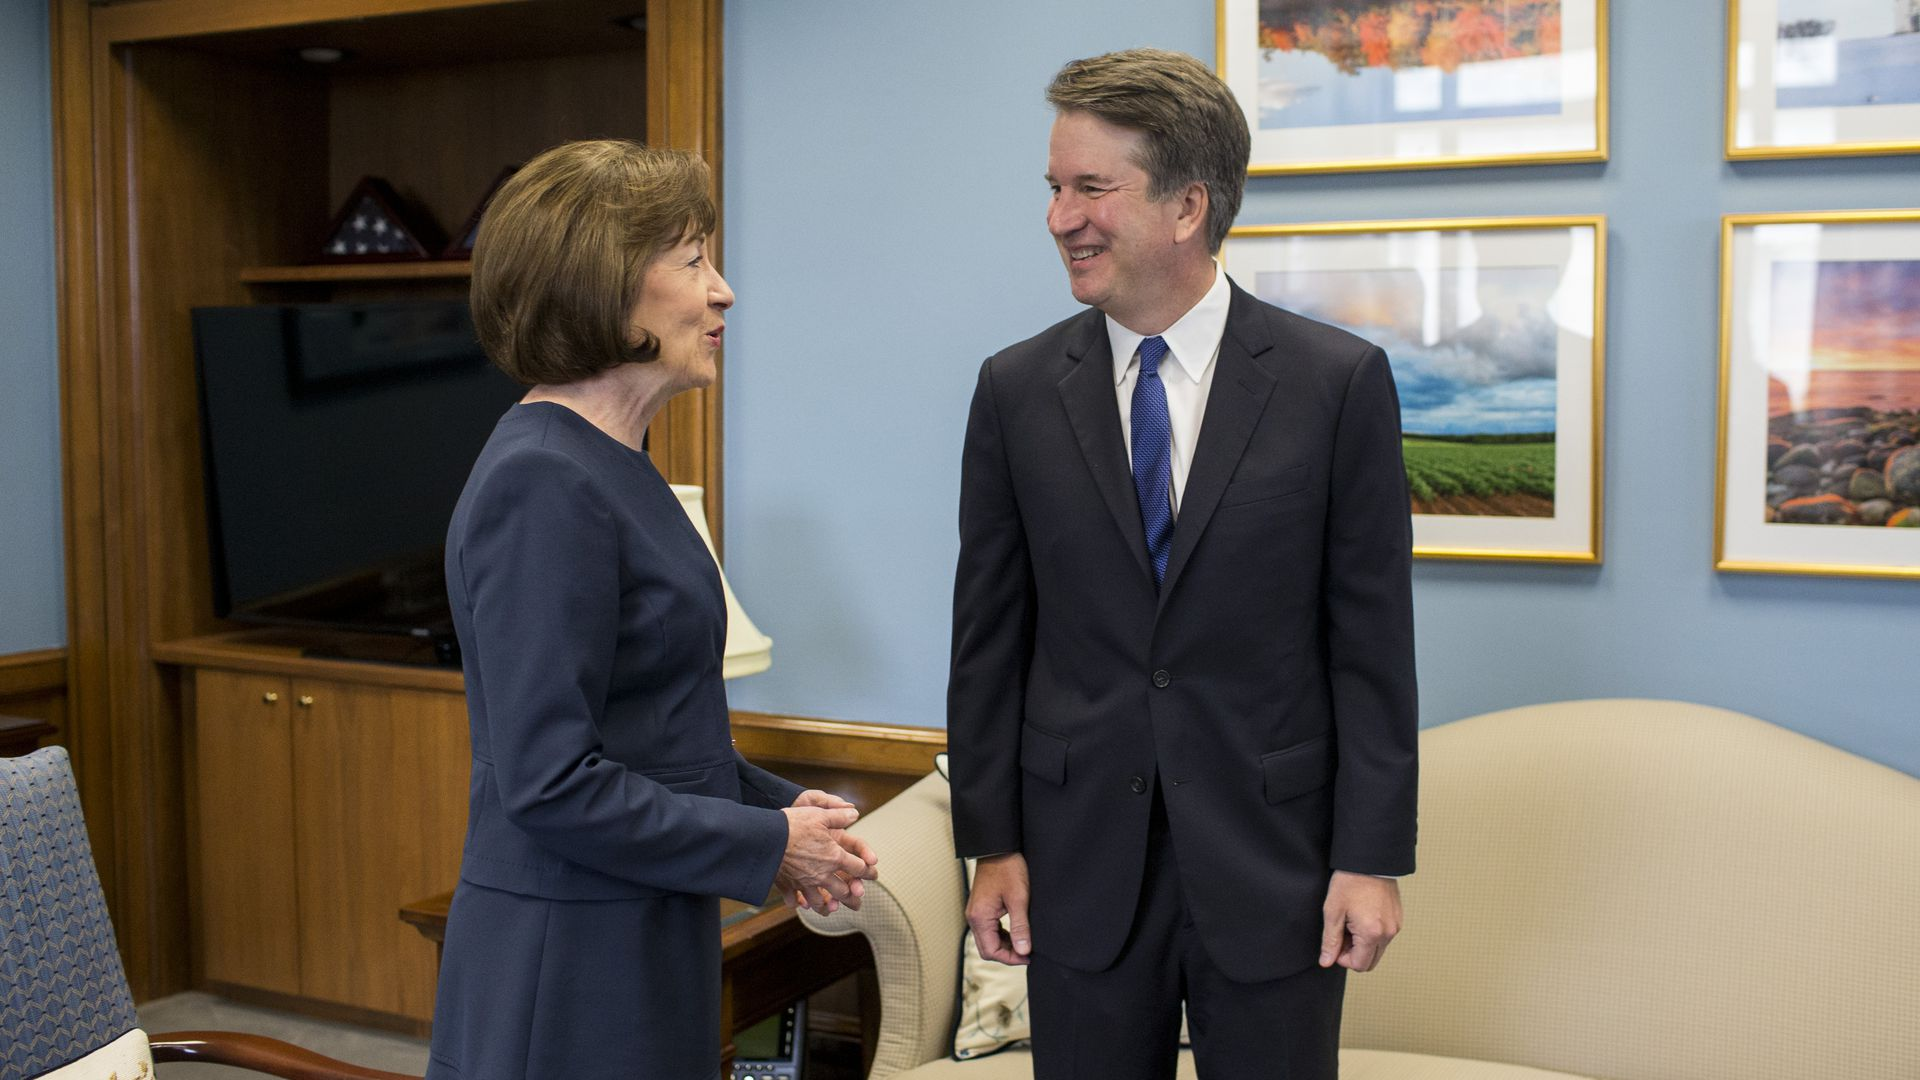 Brett Kavanuagh meeting with Susan Collins